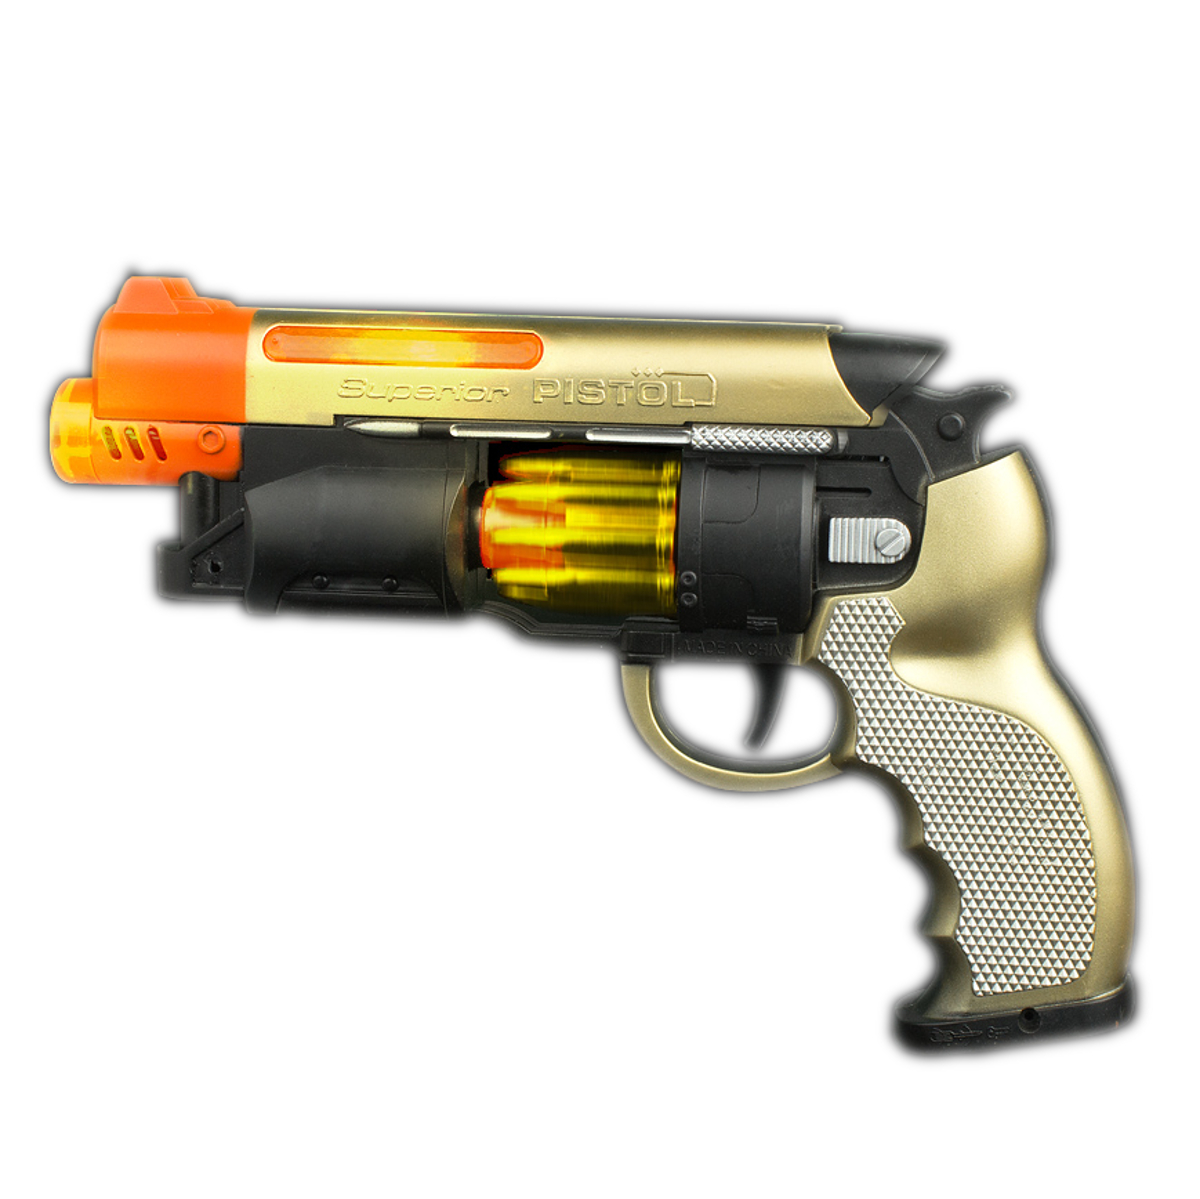 LED Light Up Self Loading Action Toy Pistol Gun All Products